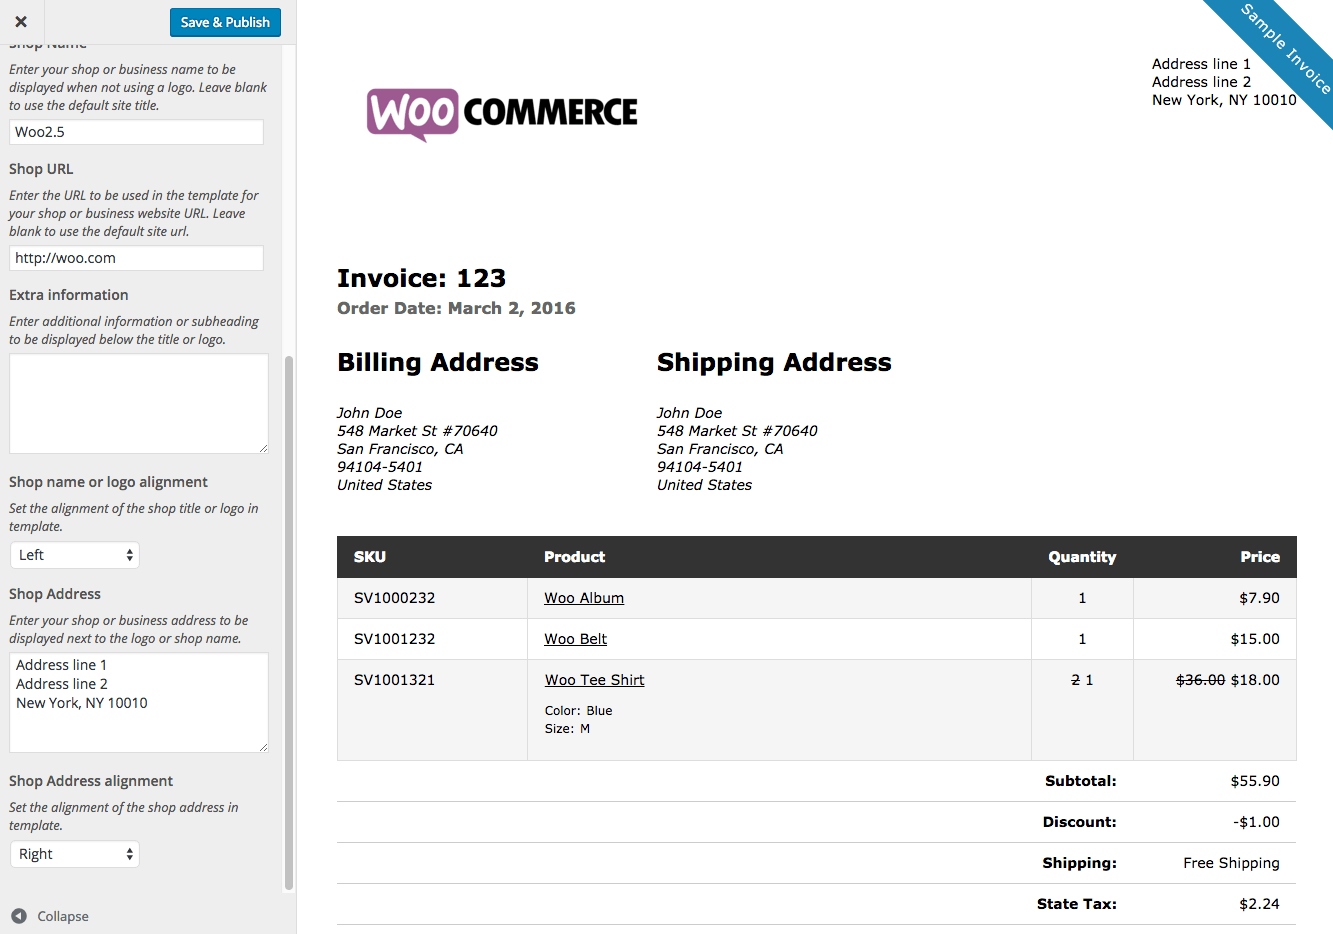 Modaoxus  Surprising Woocommerce Print Invoices Amp Packing Lists  Woocommerce Docs With Handsome Woocommerce Print Invoices  Packing Lists Customizer With Delectable Examples Of Invoices Also Paypal Invoicing In Addition Google Drive Invoice Template And Billing Invoice As Well As Billing Invoice Template Additionally Microsoft Office Invoice Template From Docswoocommercecom With Modaoxus  Handsome Woocommerce Print Invoices Amp Packing Lists  Woocommerce Docs With Delectable Woocommerce Print Invoices  Packing Lists Customizer And Surprising Examples Of Invoices Also Paypal Invoicing In Addition Google Drive Invoice Template From Docswoocommercecom